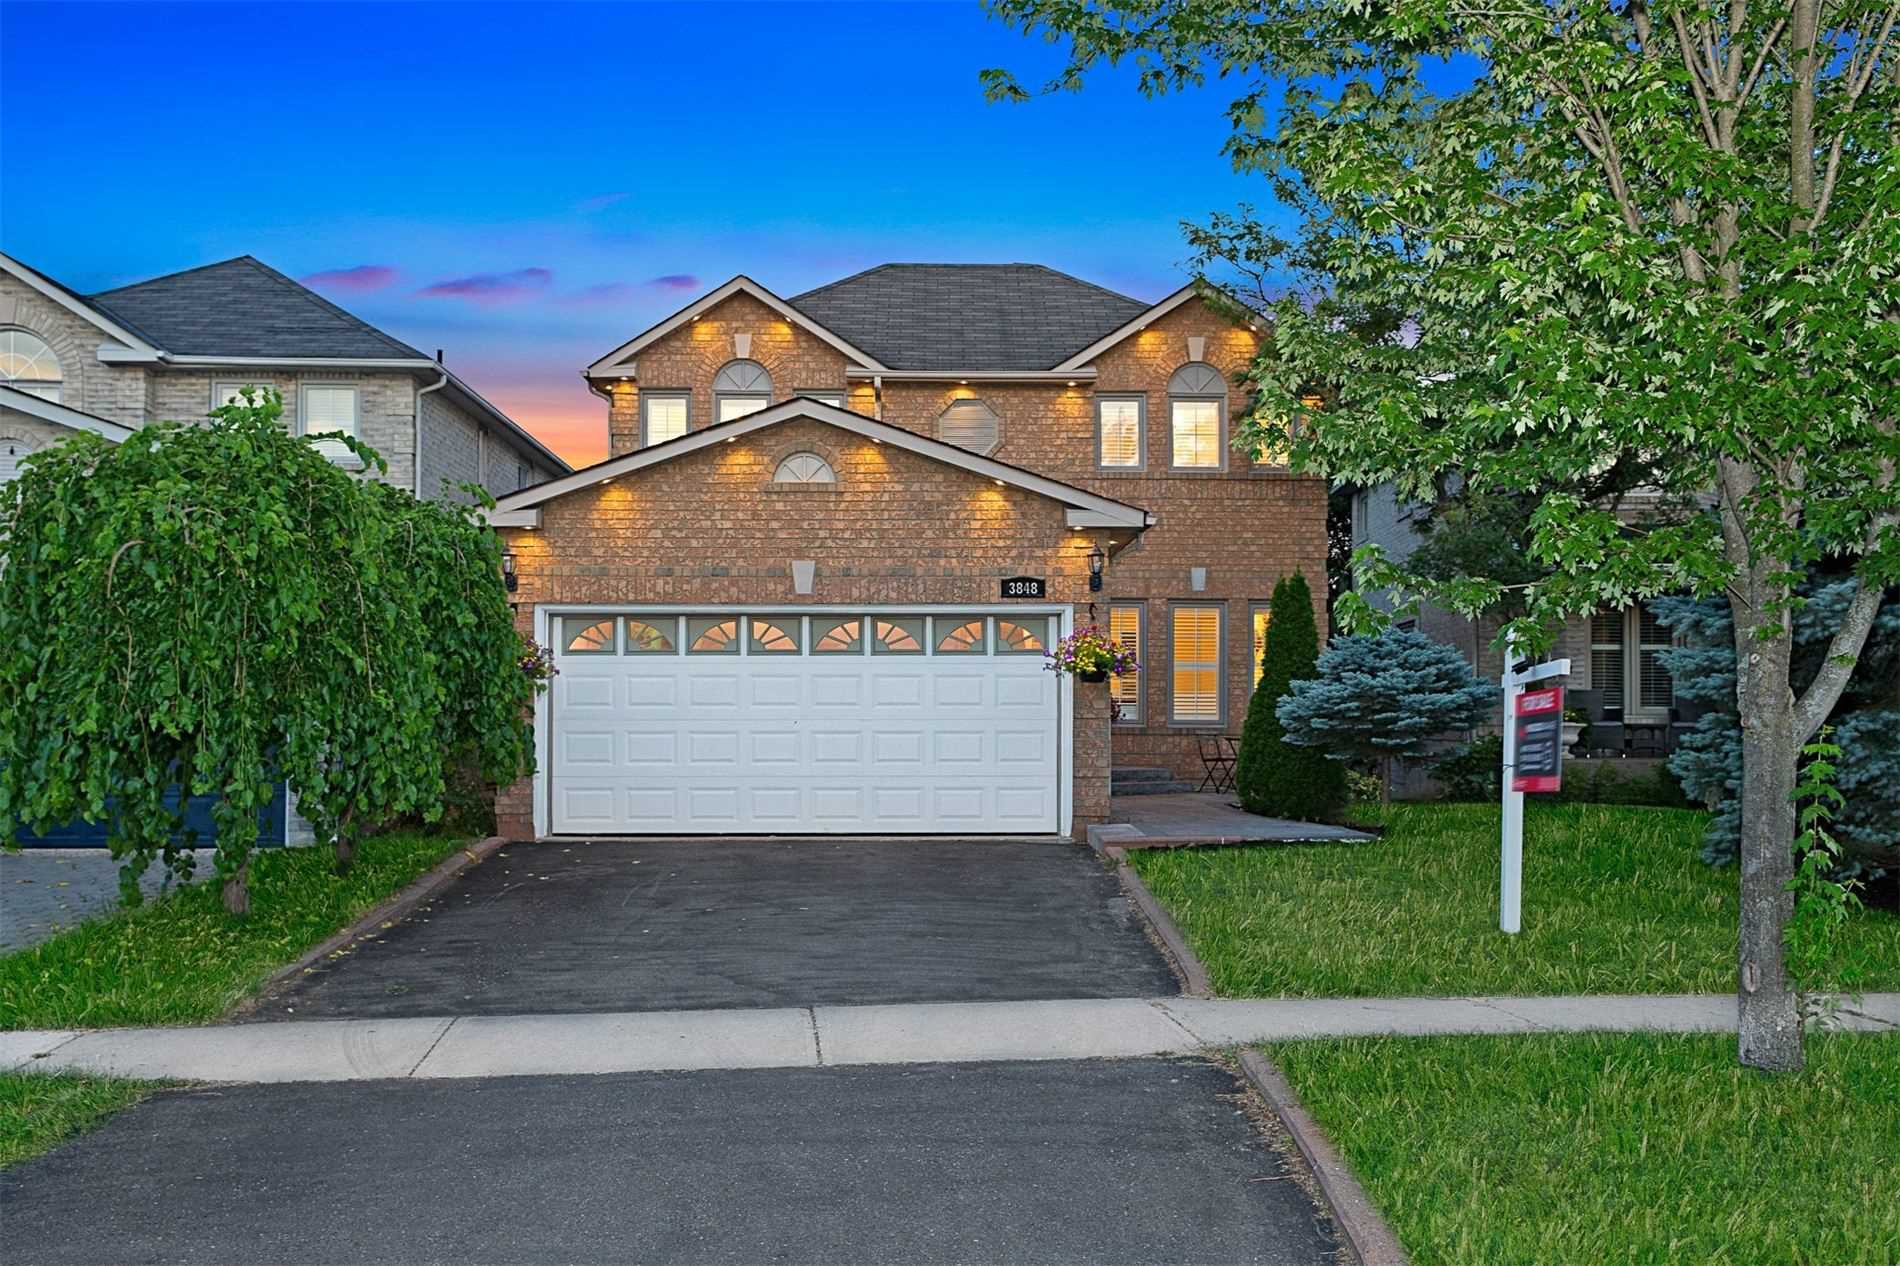 Main Photo: 3848 Periwinkle Crescent in Mississauga: Lisgar House (2-Storey) for sale : MLS®# W4819537